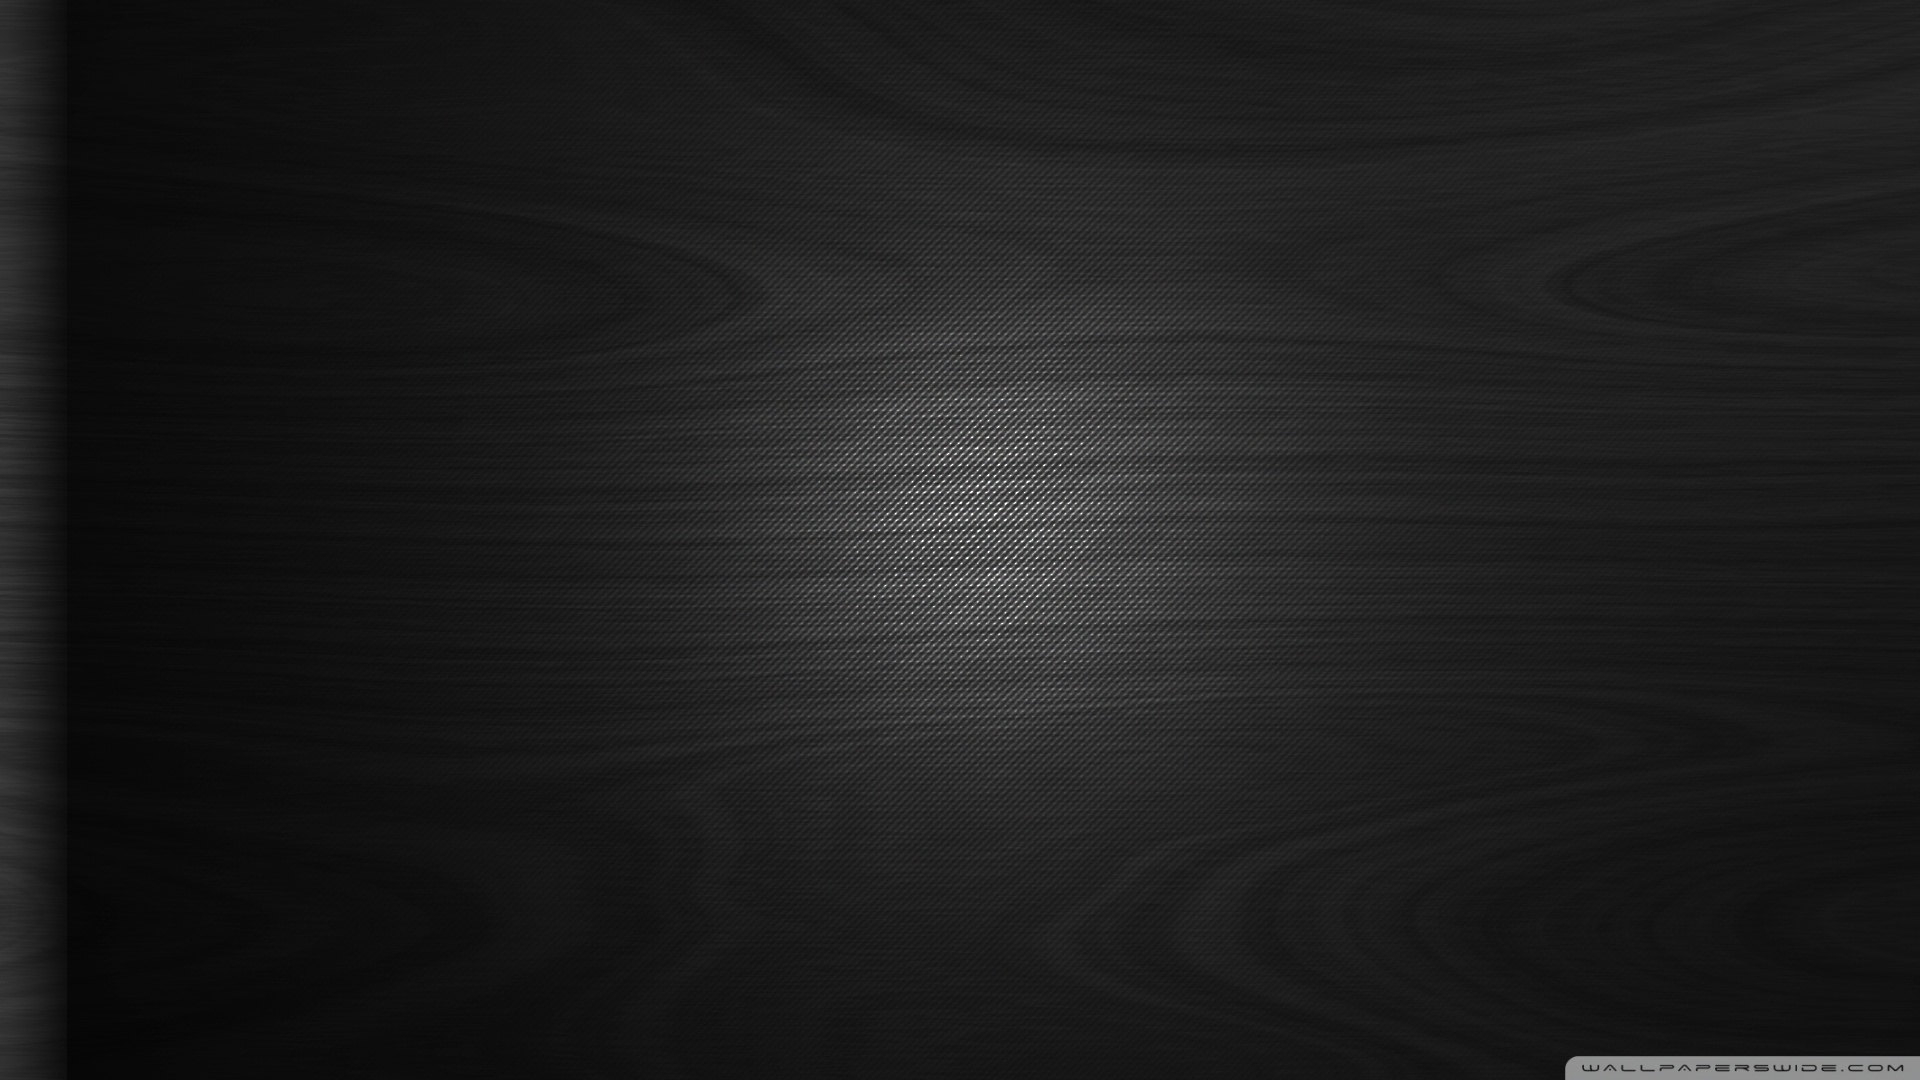 Black Wallpaper Background : 35 HD Wood Wallpapers/Backgrounds For Free Download